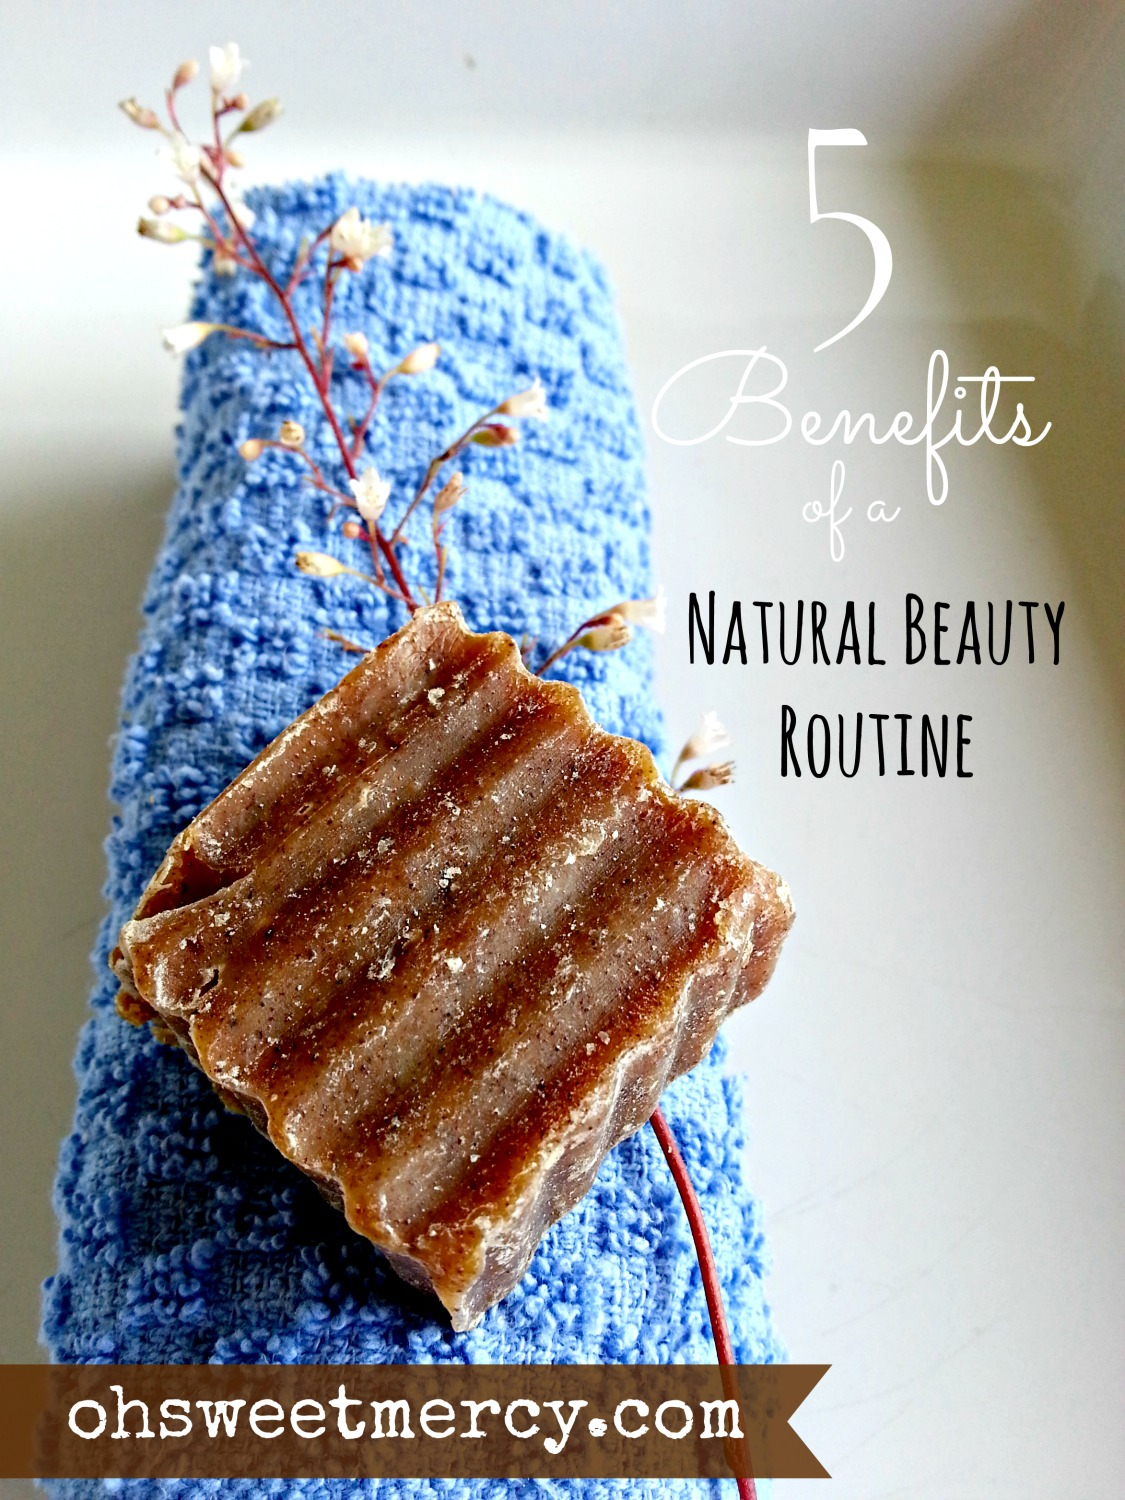 5 Benefits of a Natural Beauty Routine